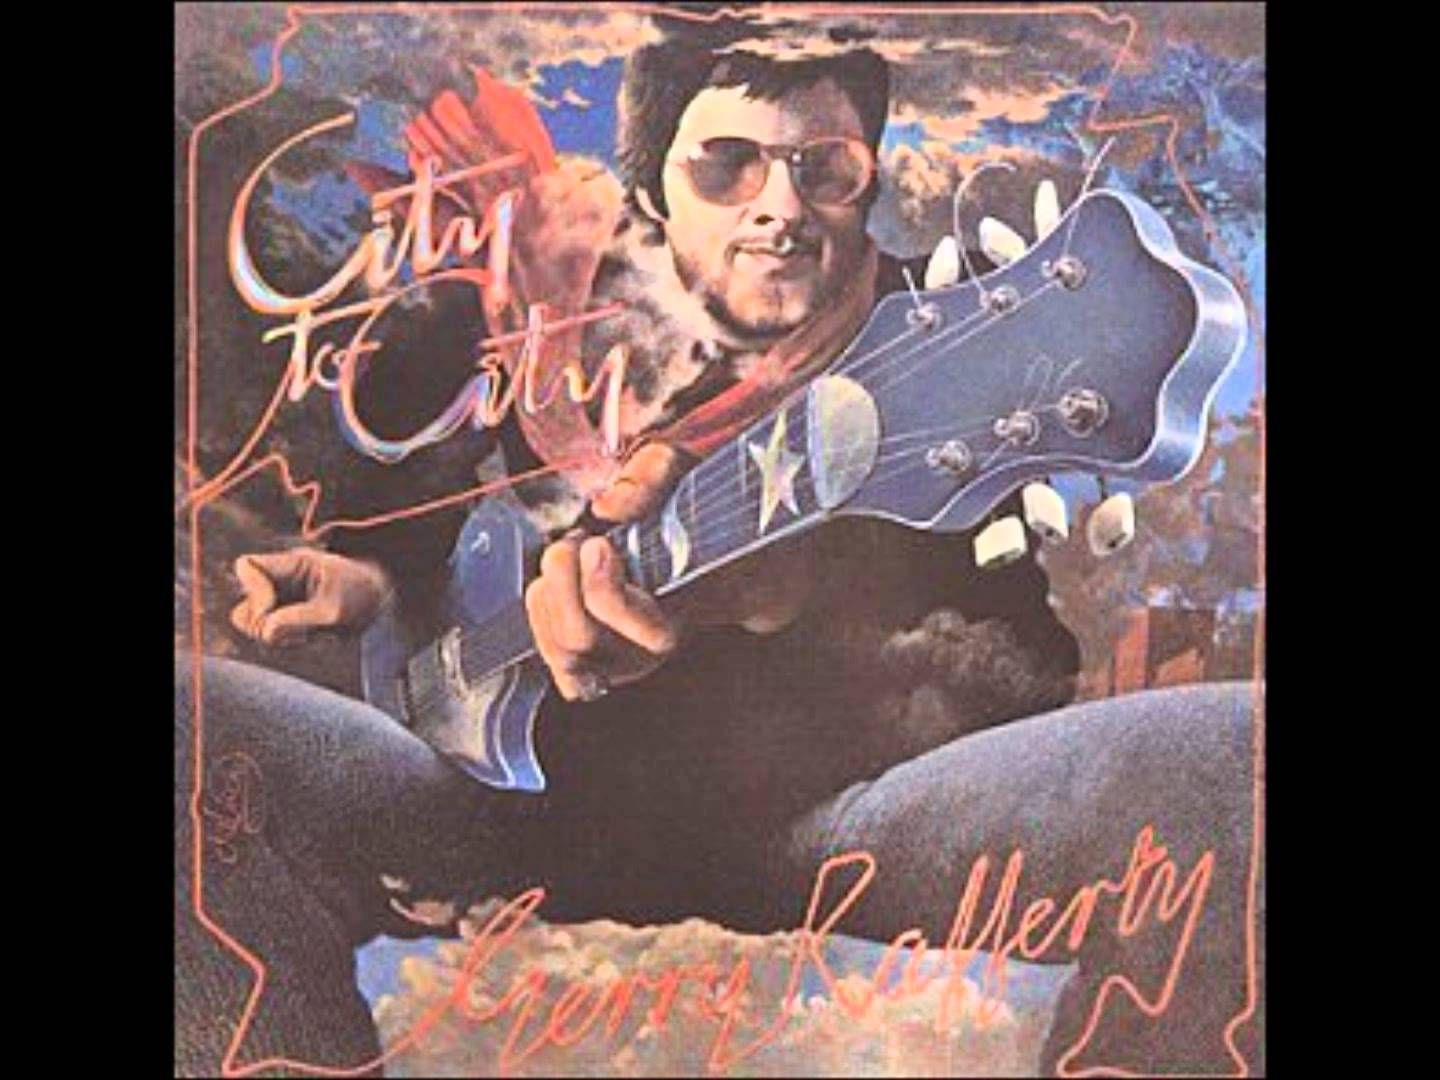 Gerry Rafferty Right Down The Line A Classic Song With Powerful Words And A True Story For Me Album Cover Art Gerry Rafferty Rock Album Covers